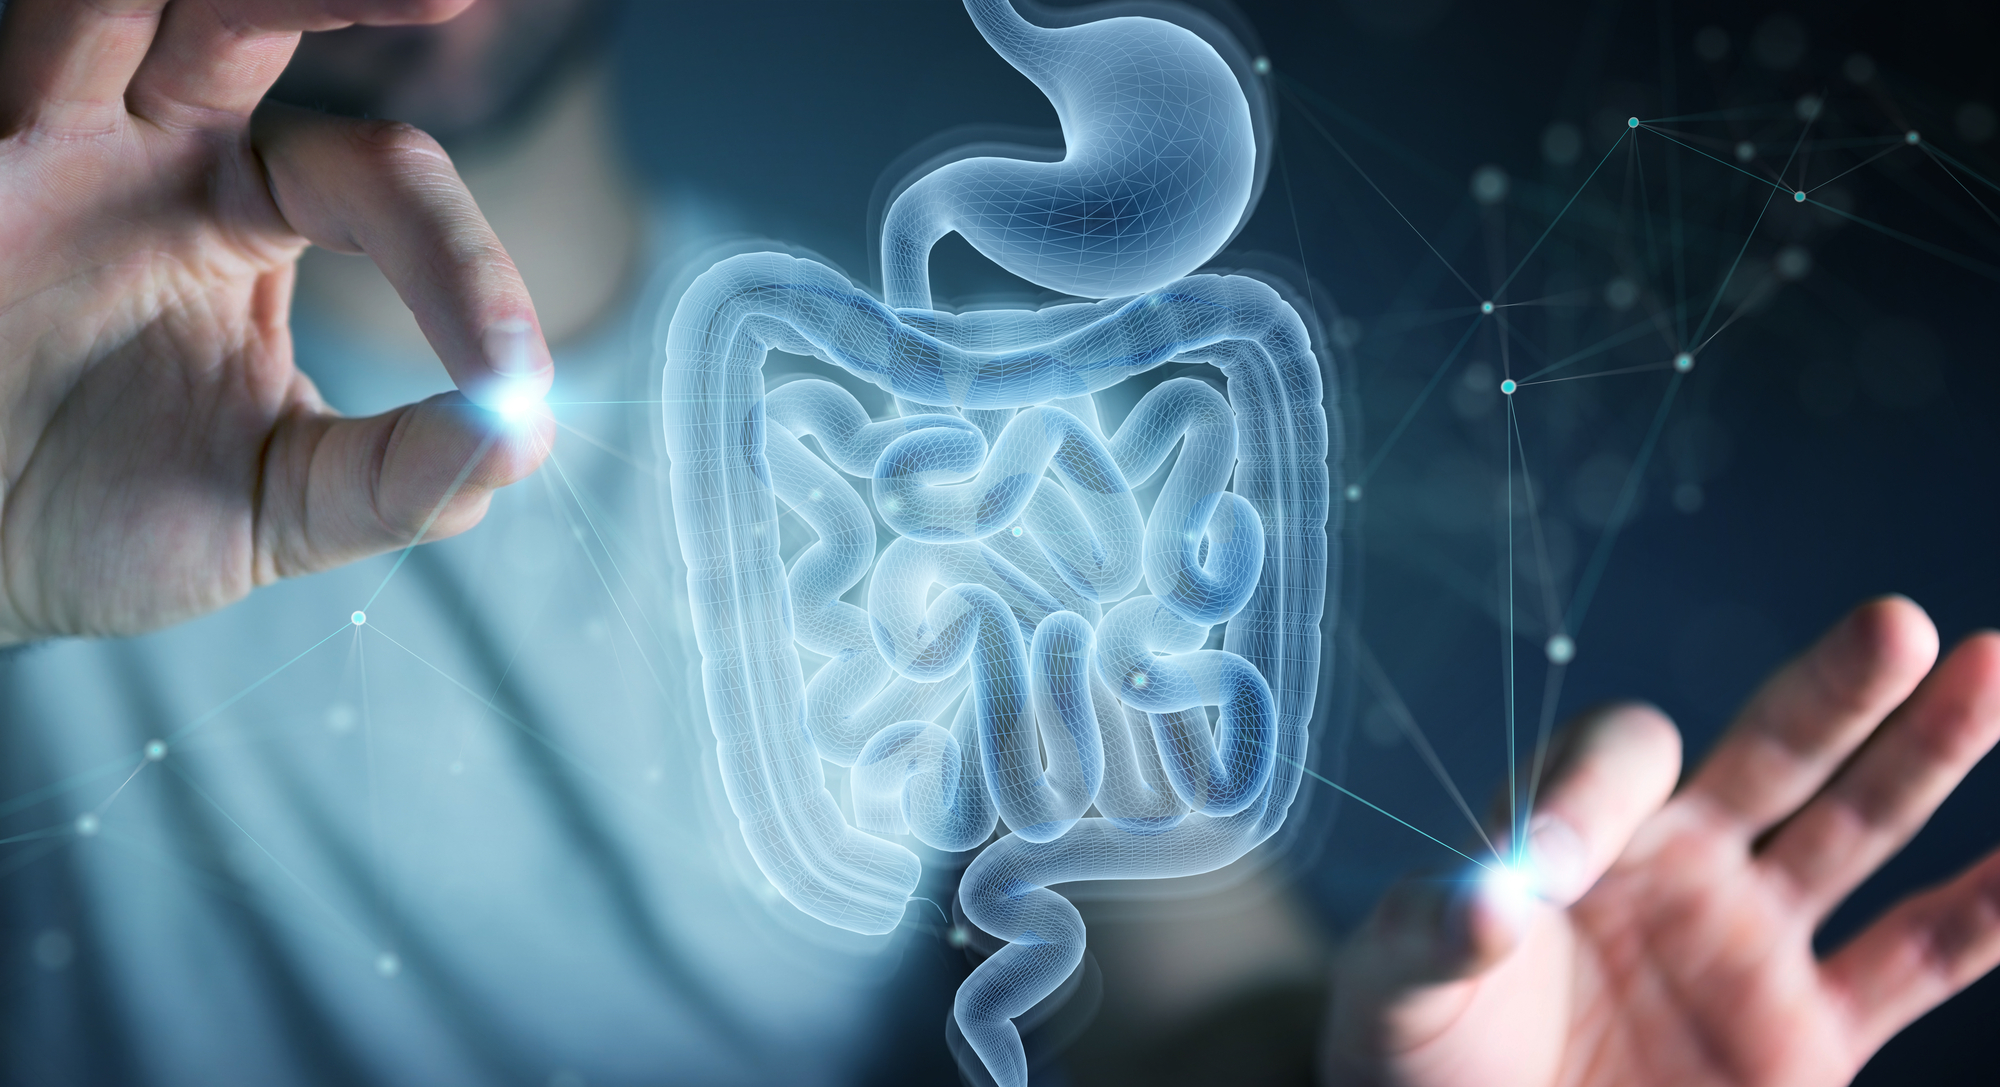 An observational study suggests certain microbiome imbalances correspond with the severity of COVID-19 and persistent symptoms of the disease